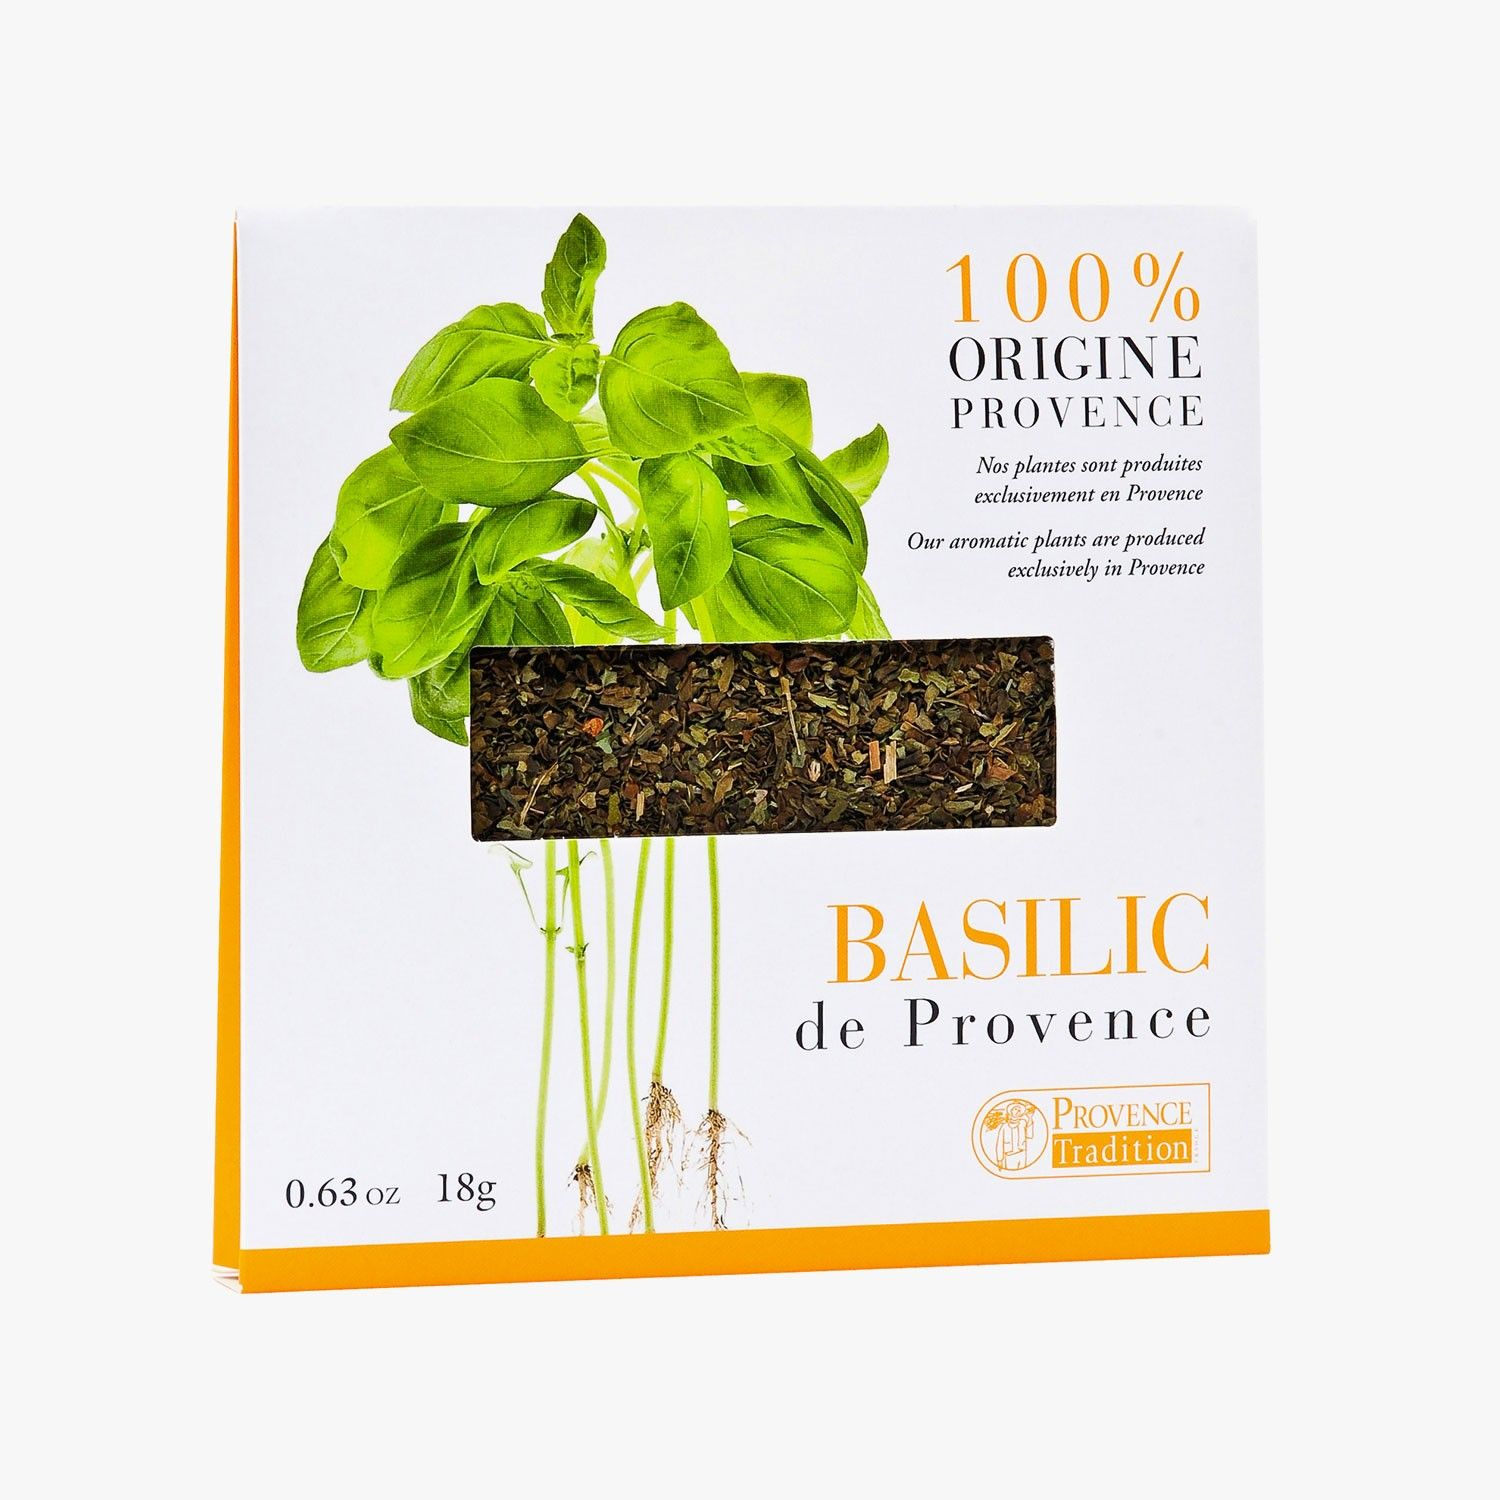 Provence tradition basilic (With images) Packaged food